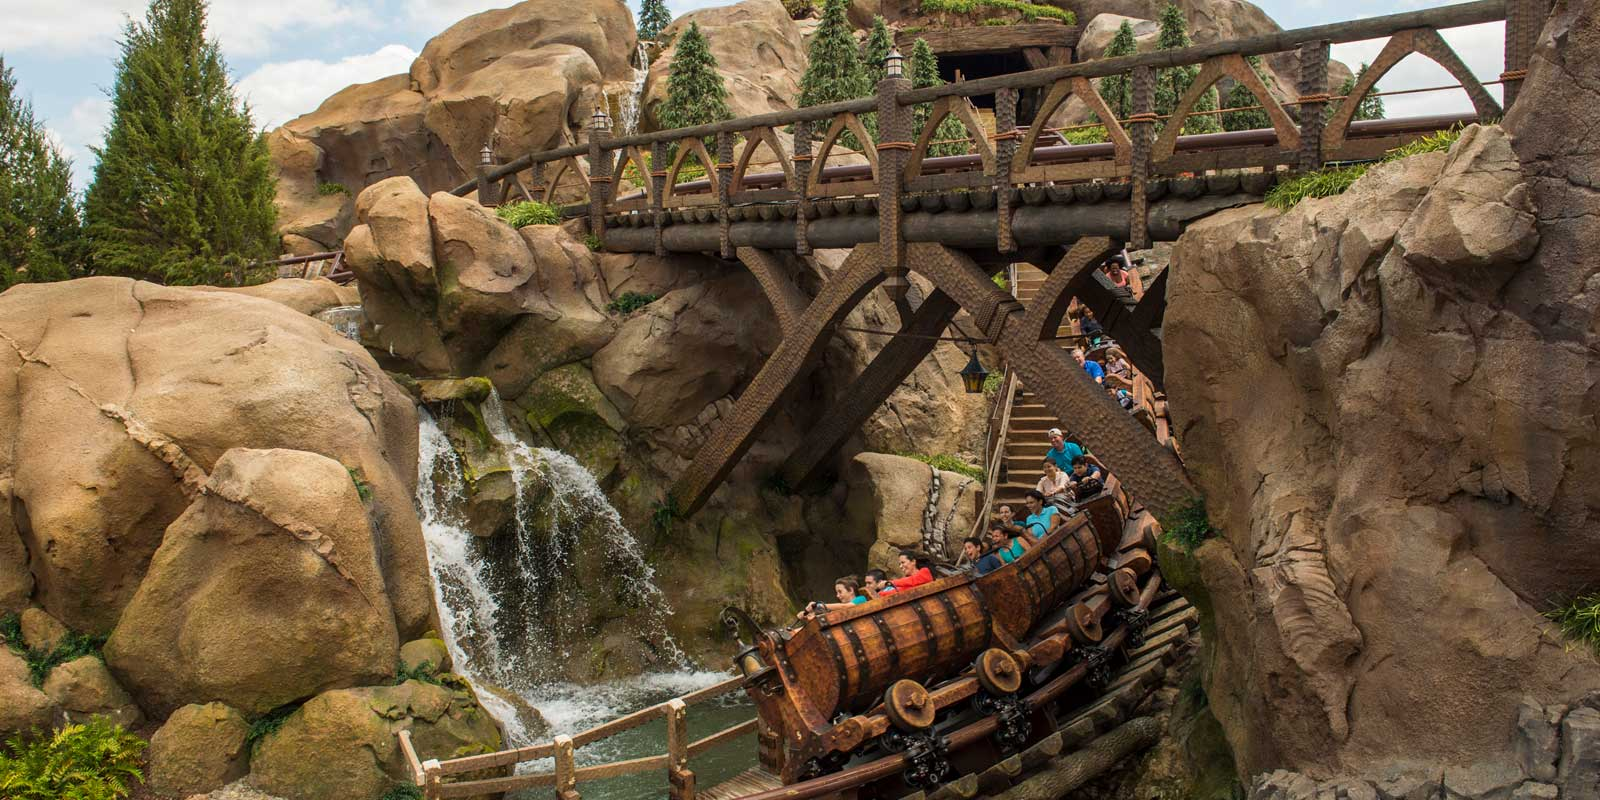 Photo of people enjoying the Seven Dwarves Mine Train at Magic Kingdom.